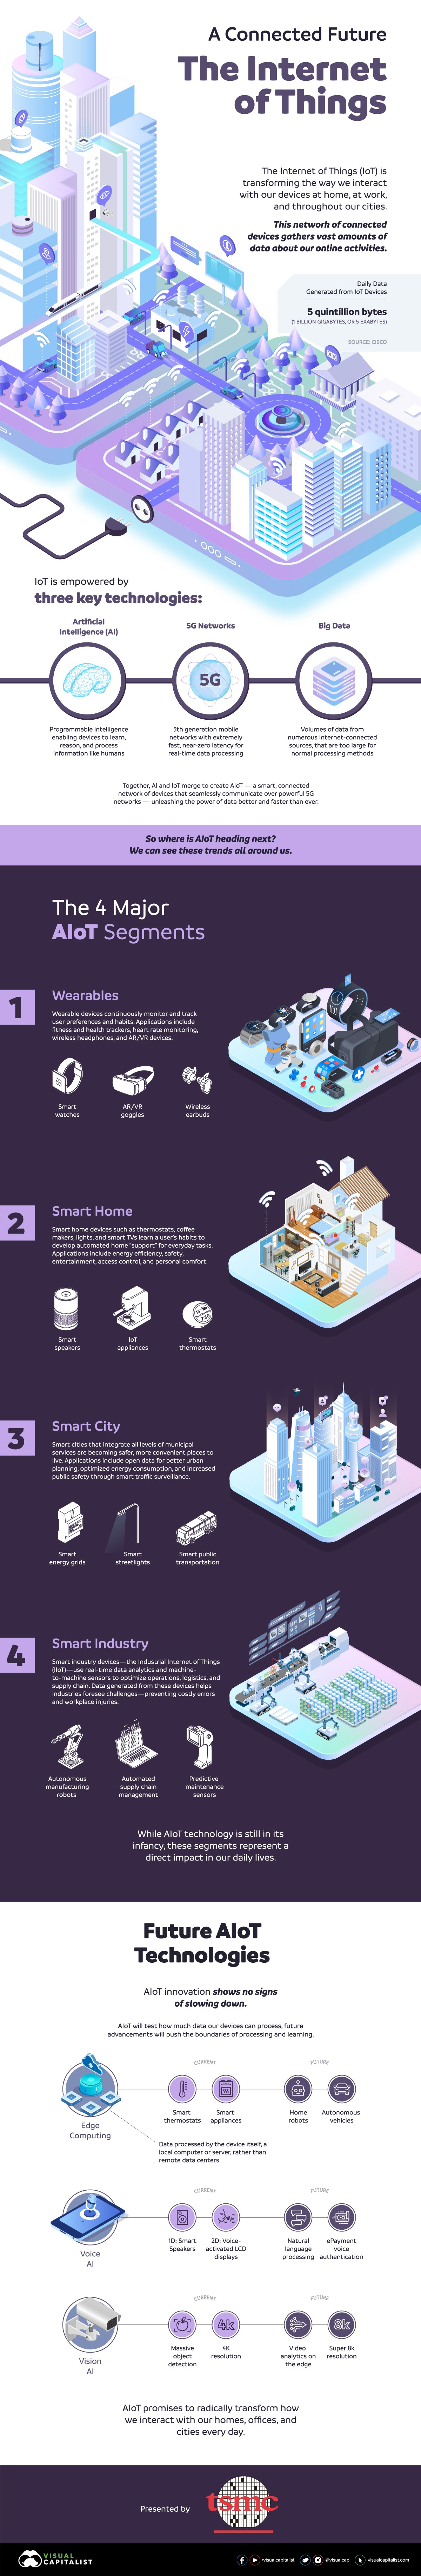 When Artificial Intelligence Meets the Internet of Things #infographic